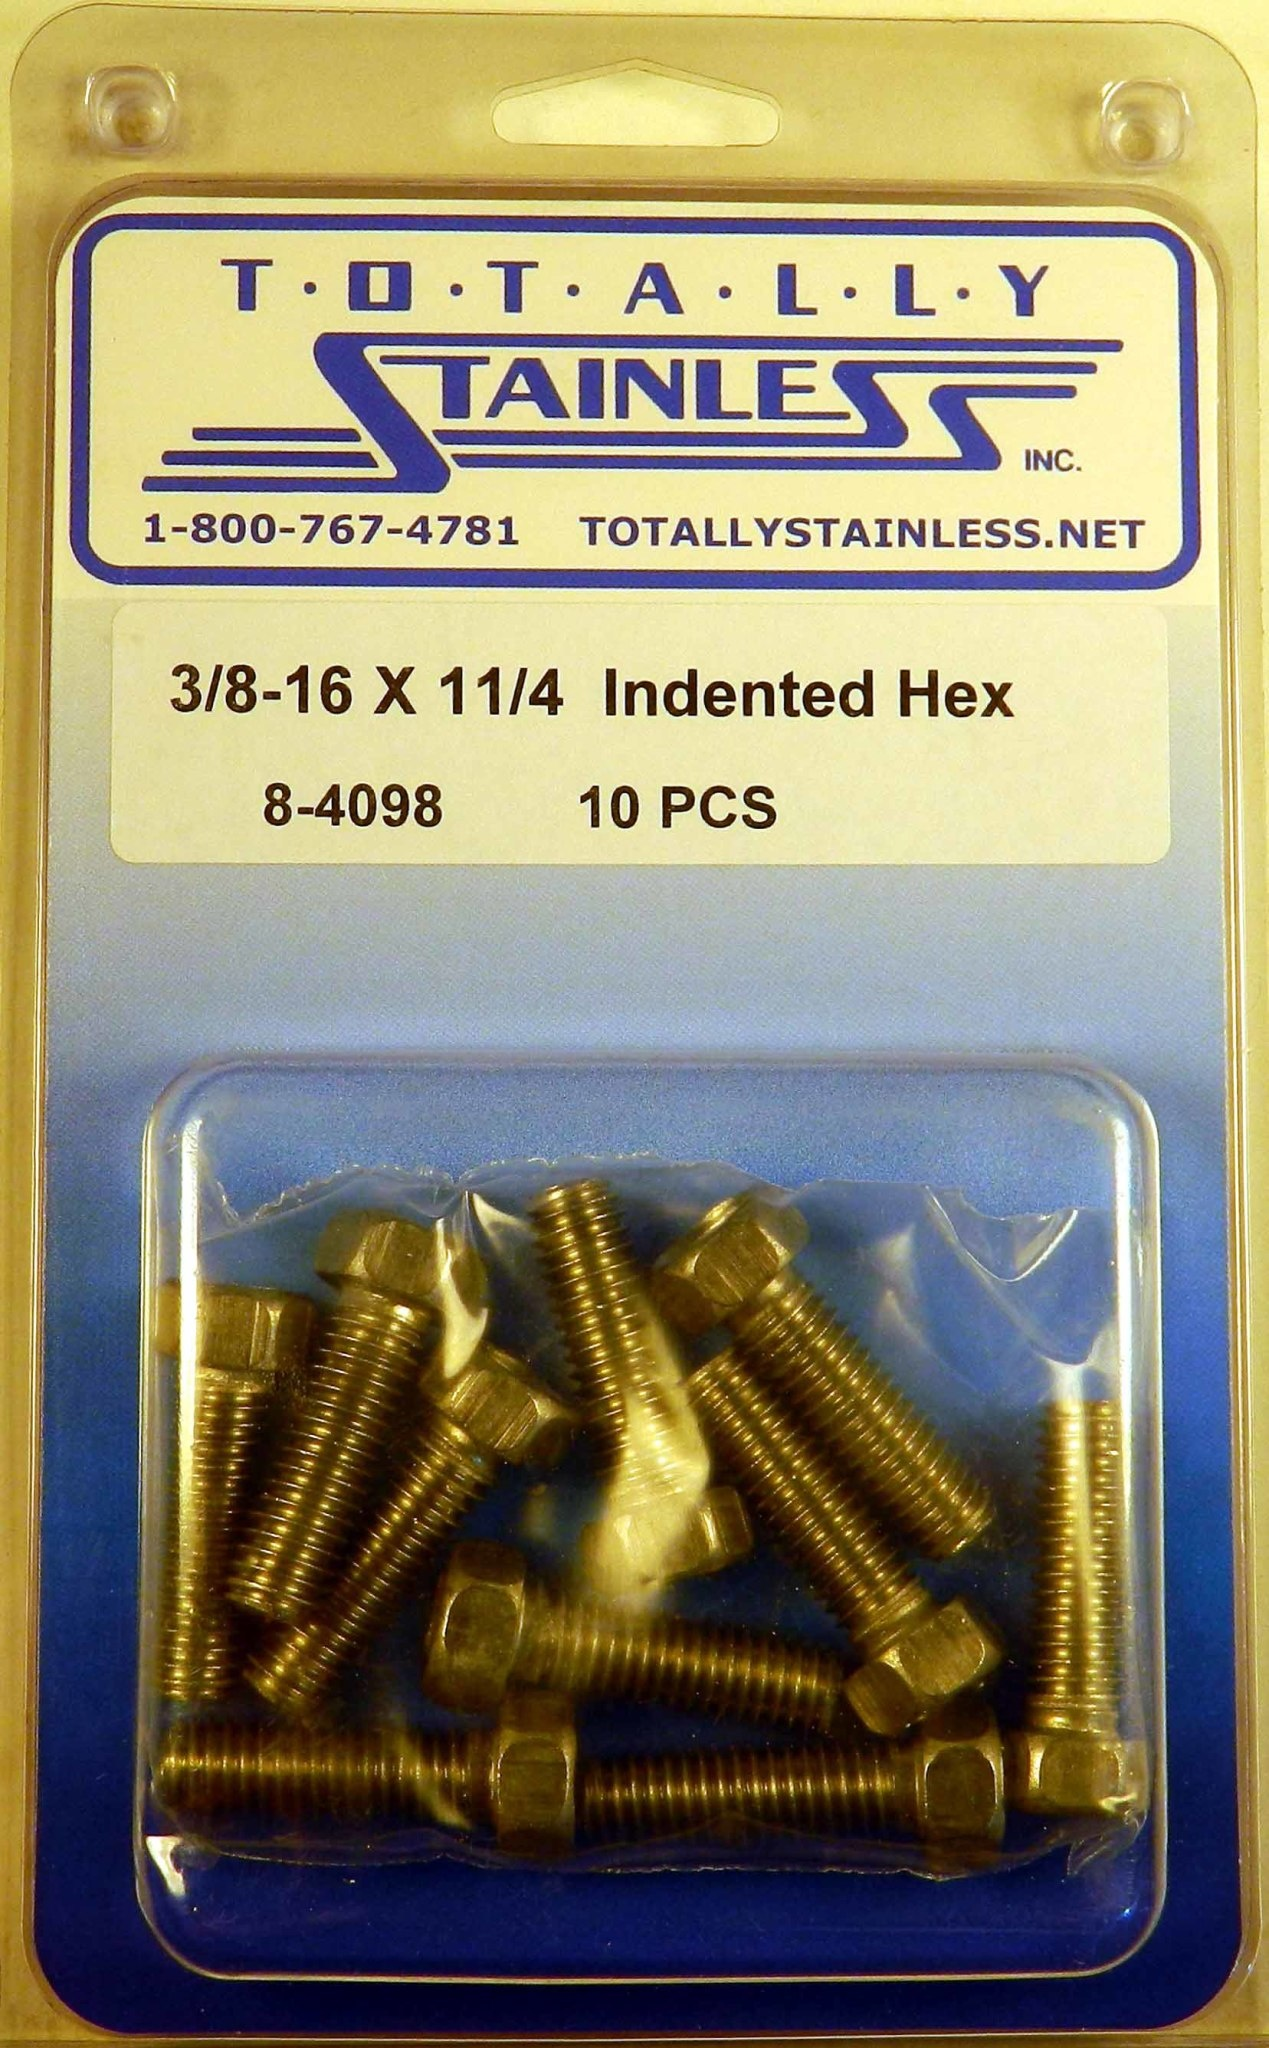 3/8-16 x 1 1/4 Indented Head Hex Bolts - Panel 6 - #8-4098